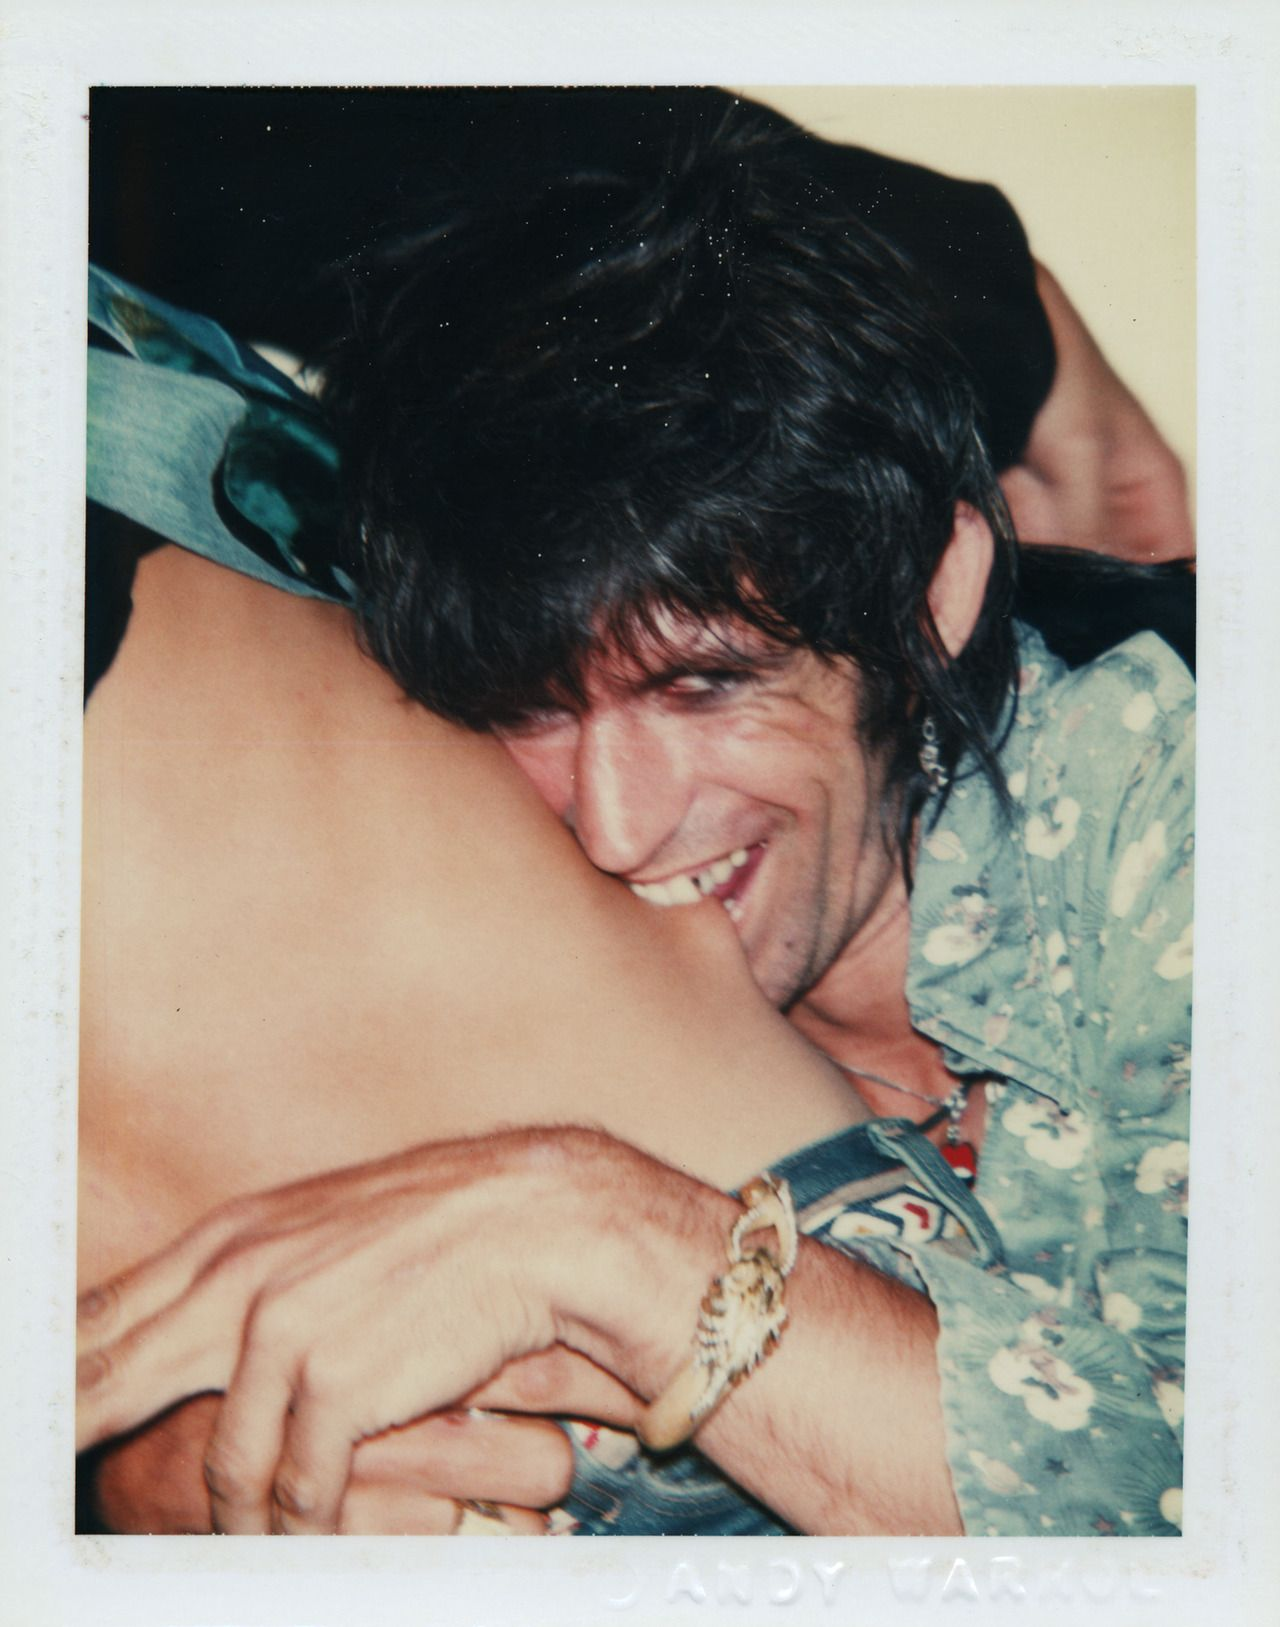 Keith photographed for 'Love You Live' cover (1977, photo by Andy Warhol).